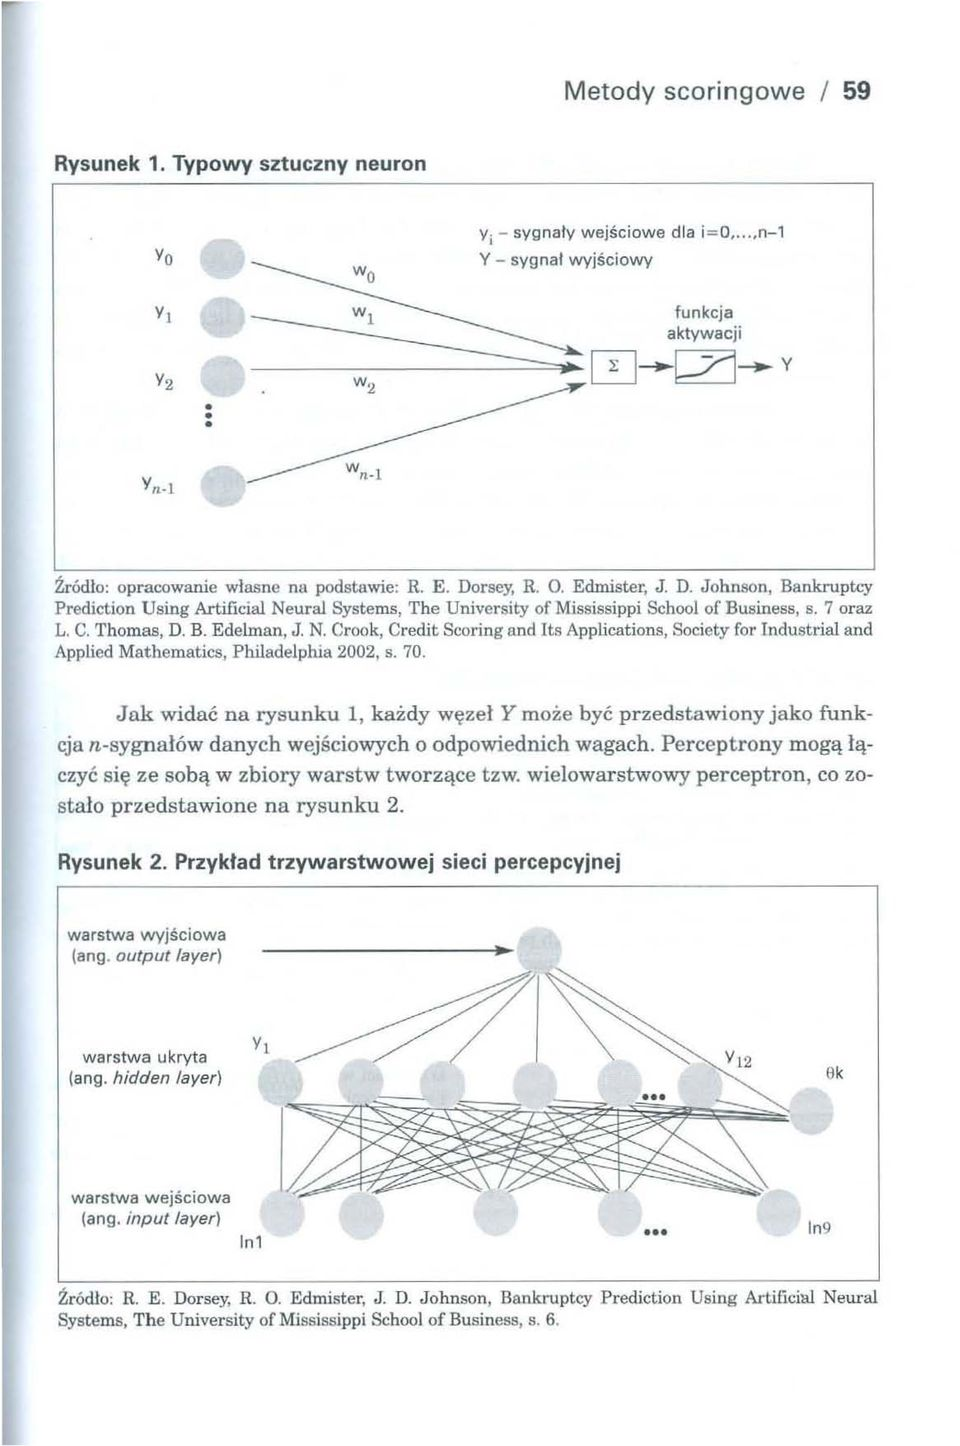 """)' Prediction Using Artificial Neural Systems, The University of Mississippi School of Business, s. 7 oraz L. C. Thomas. D. B. Edelman, J. N. Crook, Credit Scoring and Its Applications, Society for Industrial and Applied Mathematics, Philadelphia 2002, s."